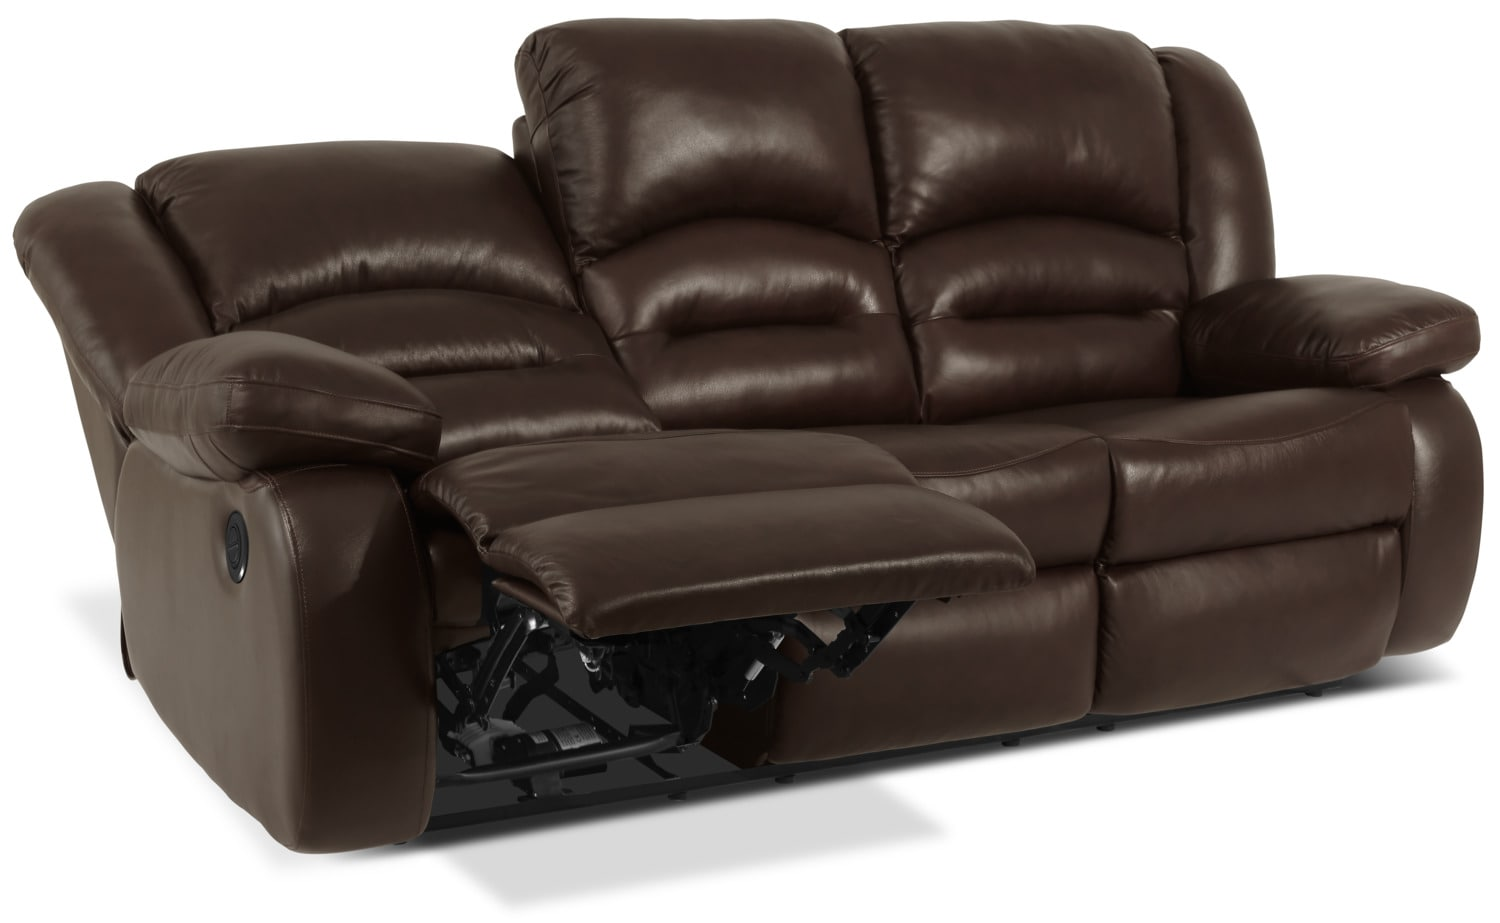 Toreno genuine leather power reclining sofa brown the for Real leather sofas